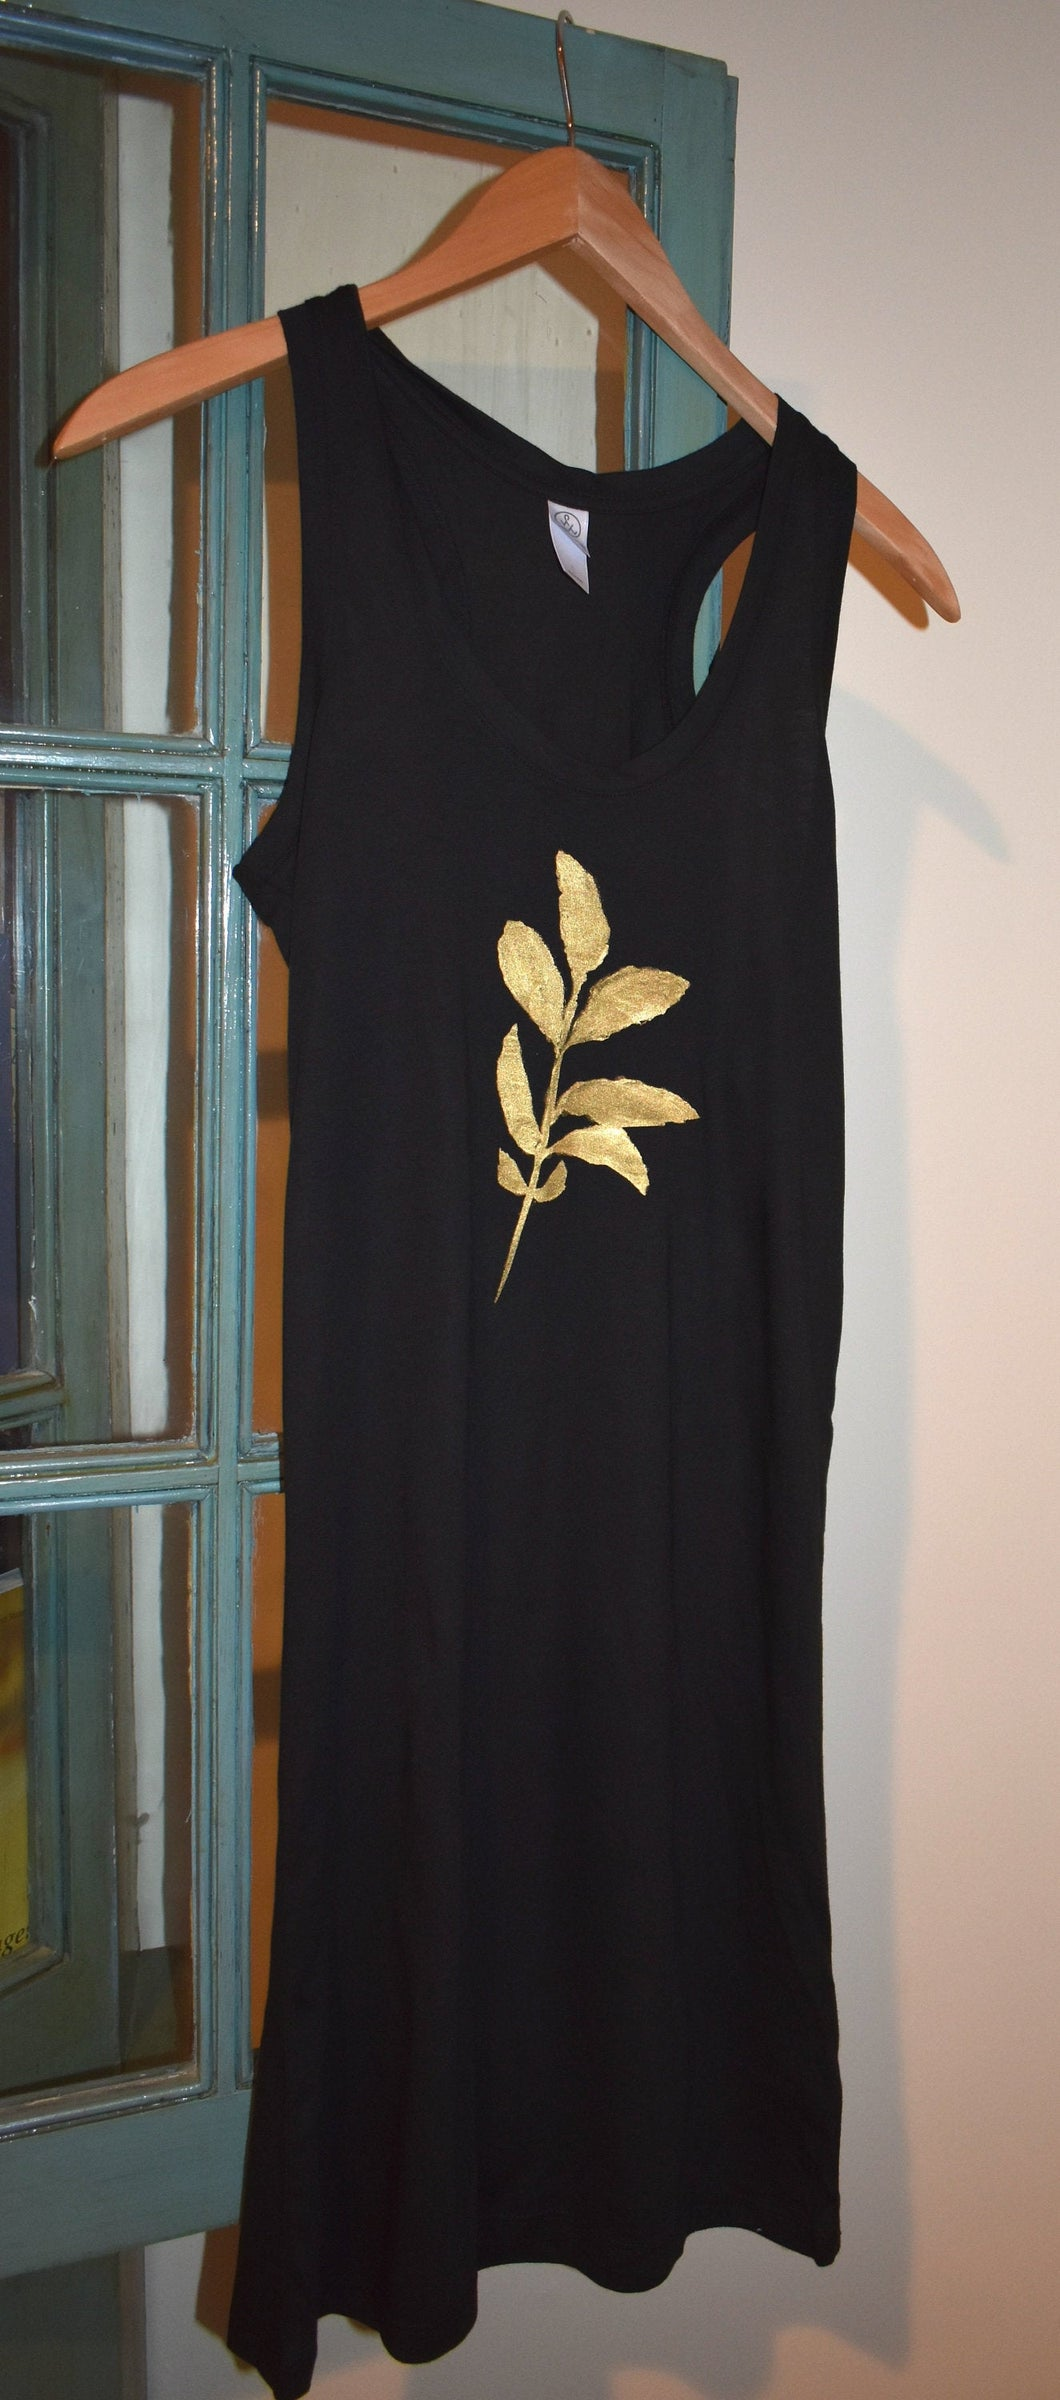 Gold Botanical Leaves Tank Top Dress Black Racer Back S Hand Painted